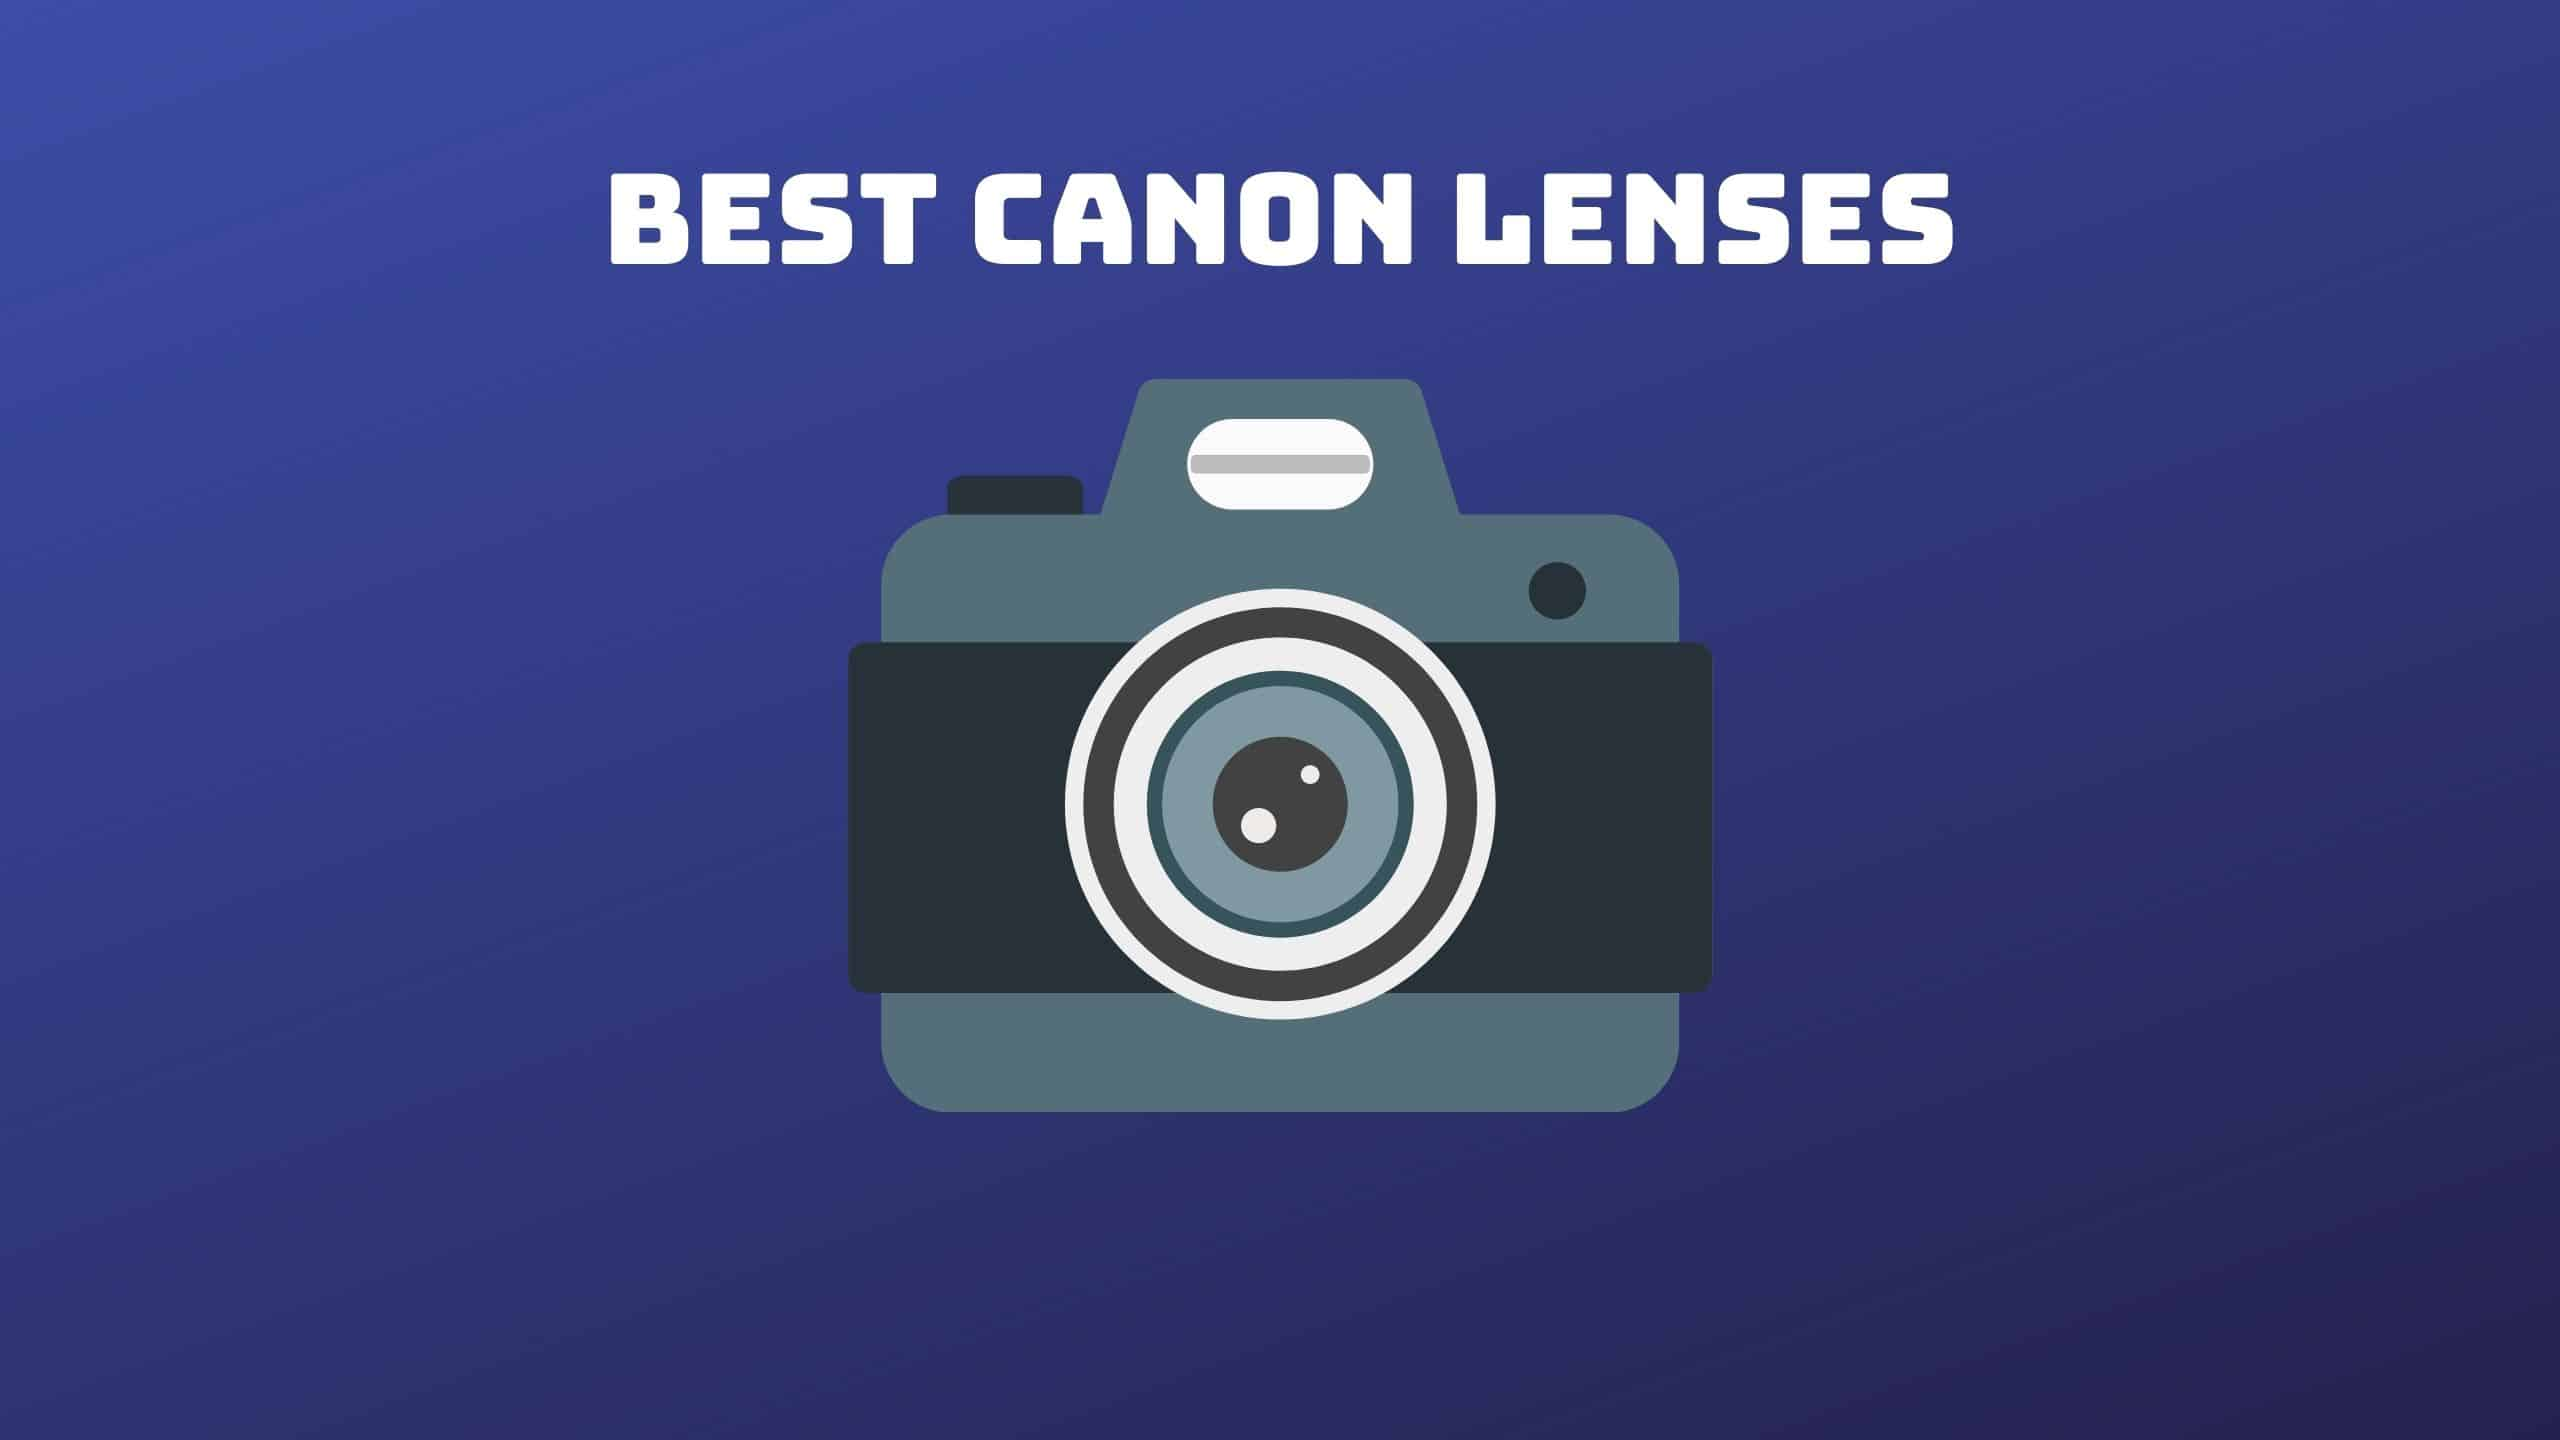 Best Canon Lenses